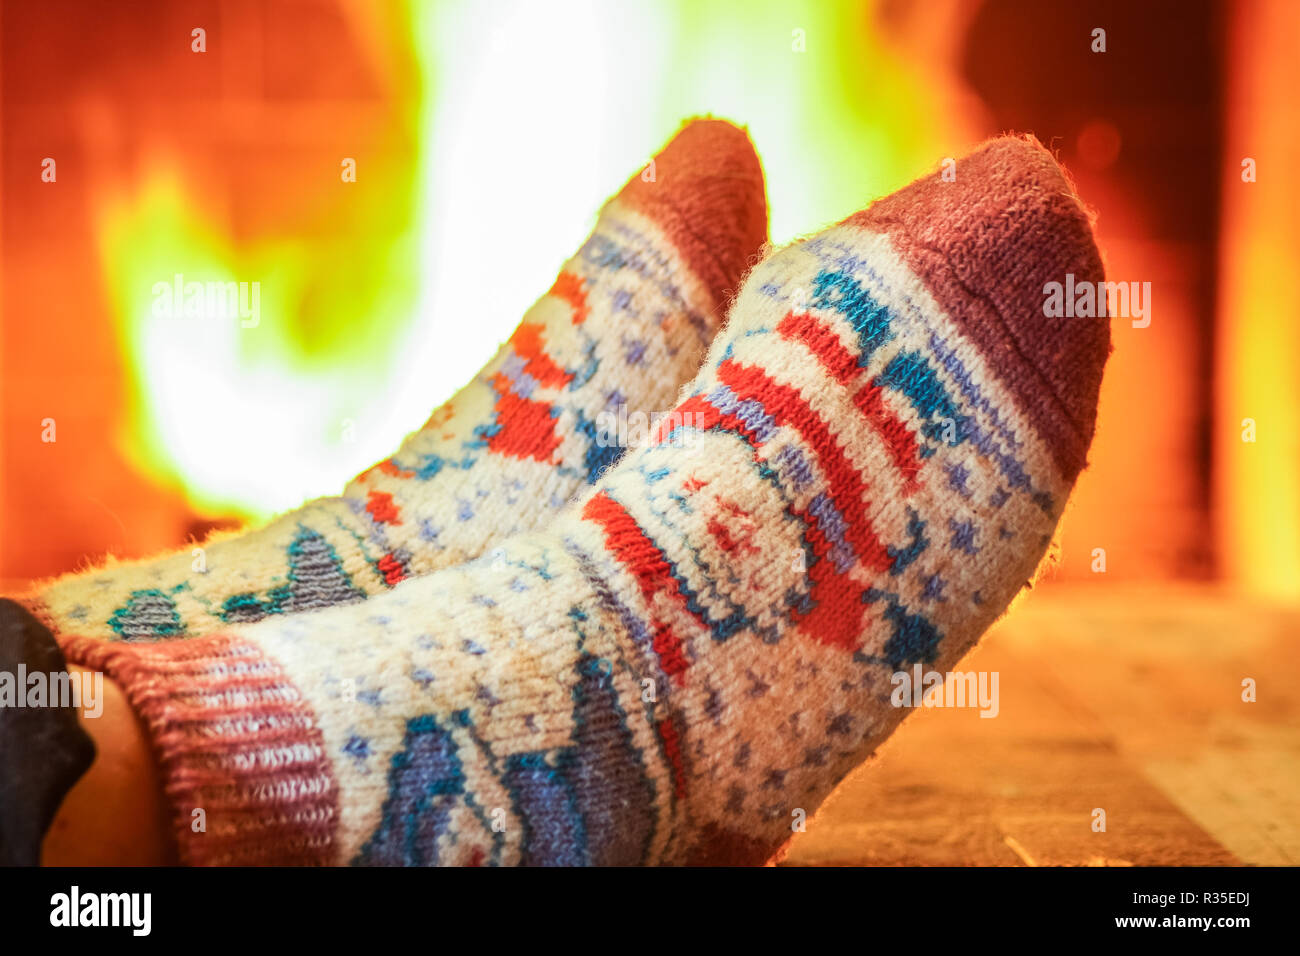 Man's Feet in lovely wool socks before cozy fireplace, in country house, winter vacation , horisontal. - Stock Image